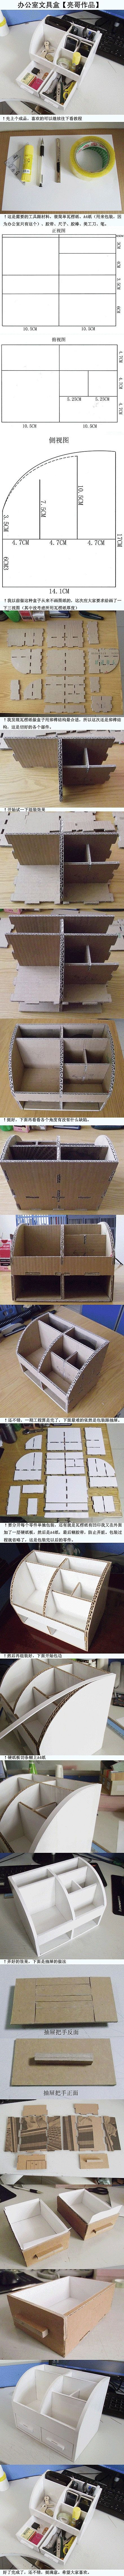 "<input+type=""hidden""+value=""""+data-frizzlyPostContainer=""""+data-frizzlyPostUrl=""http://www.usefuldiy.com/diy-carton-office-stationery-box/""+data-frizzlyPostTitle=""DIY+Carton+Office+Stationery+Box""+data-frizzlyHoverContainer=""""><p>>>>+Craft+Tutorials+More+Free+Instructions+Free+Tutorials+More+Craft+Tutorials</p>"